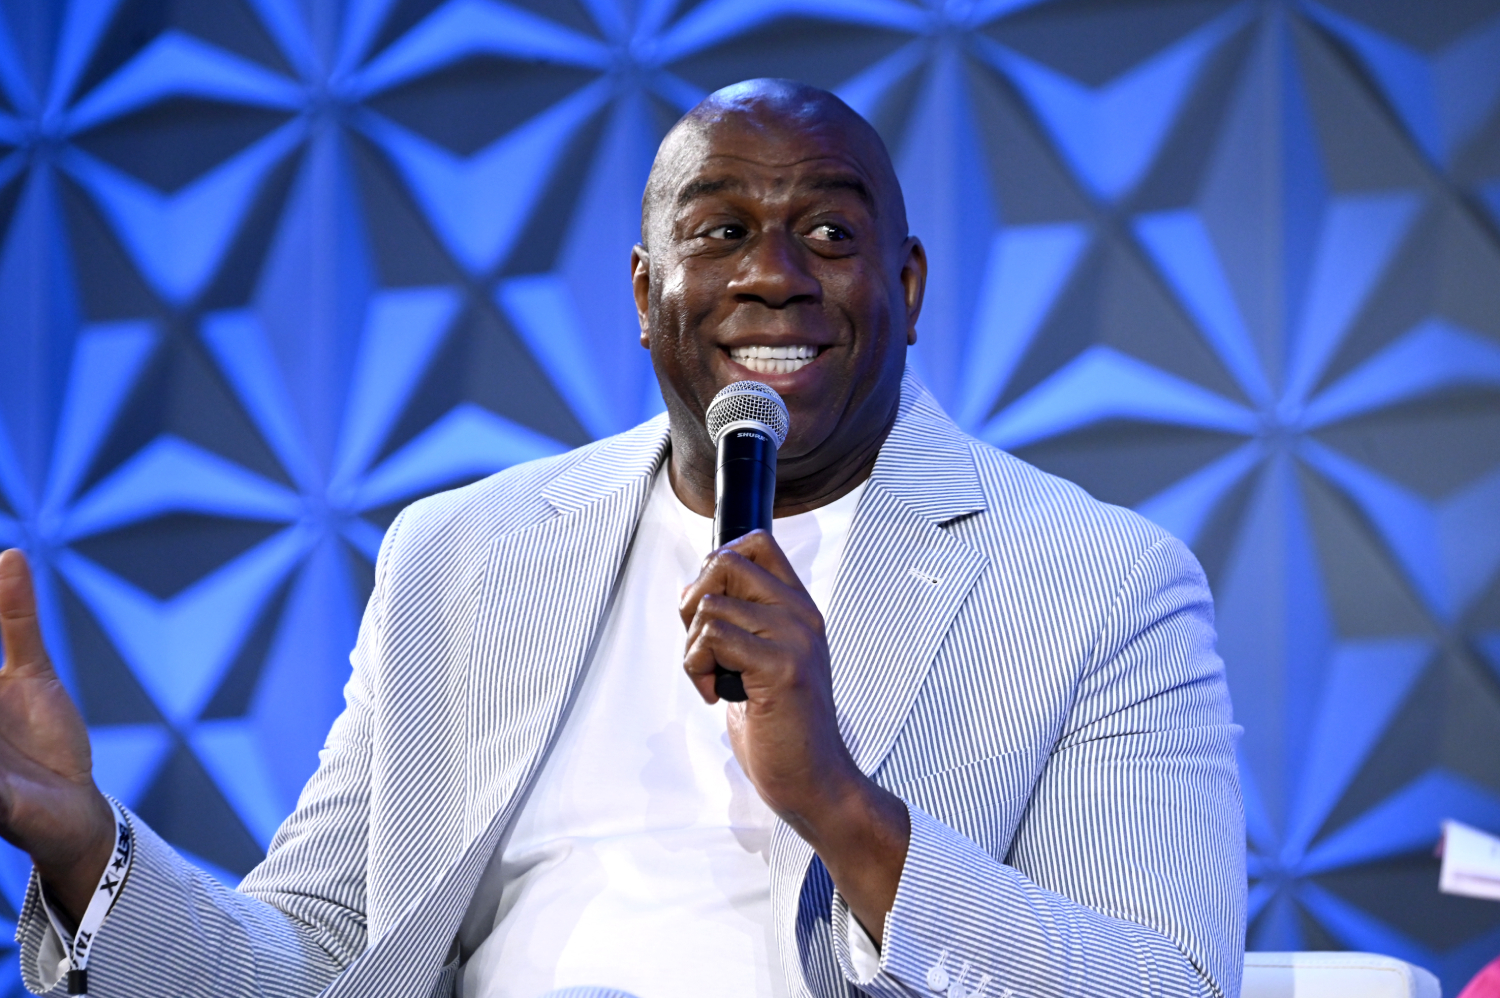 Magic Johnson wasn't in the Lakers' front office for too long, but he made comments that ultimately ticked off a star he had just traded.